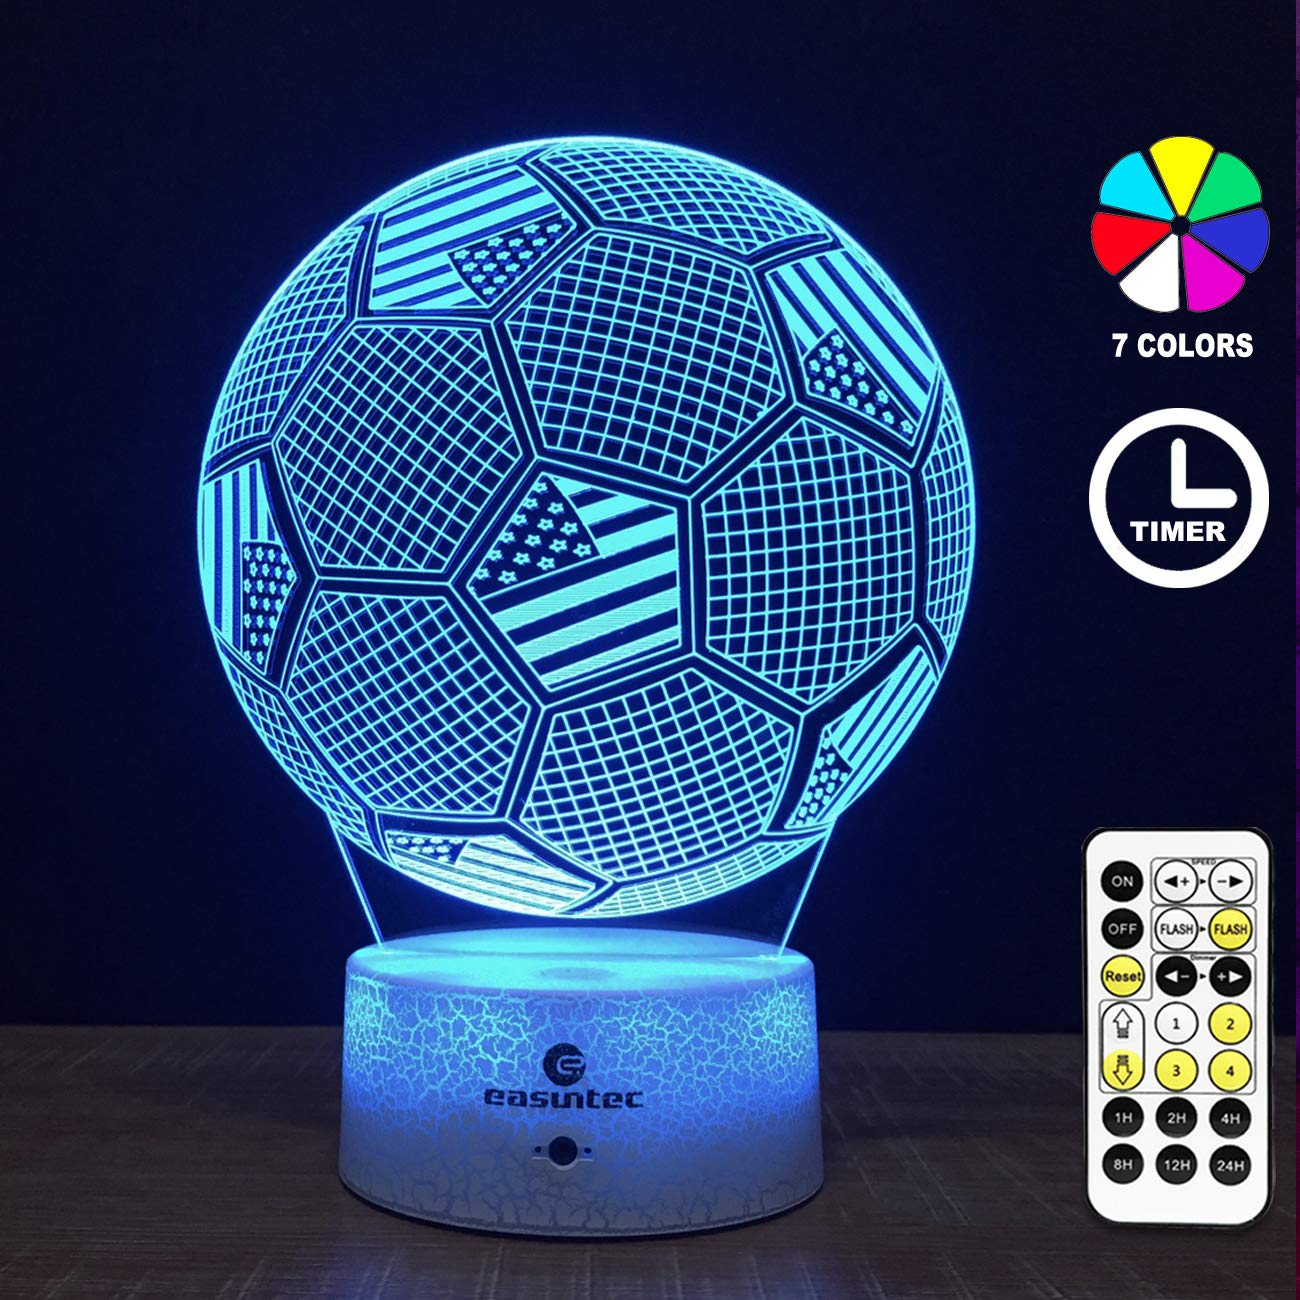 Easuntec Soccer Toys for Boys,Soccer Ball Night Light with Timing Remote Control & Smart Touch 7 Colors Kids Toys Age 5 6 7 8 9 10 Year Old Girl or Boy Gifts (Soccer) by easuntec (Image #1)